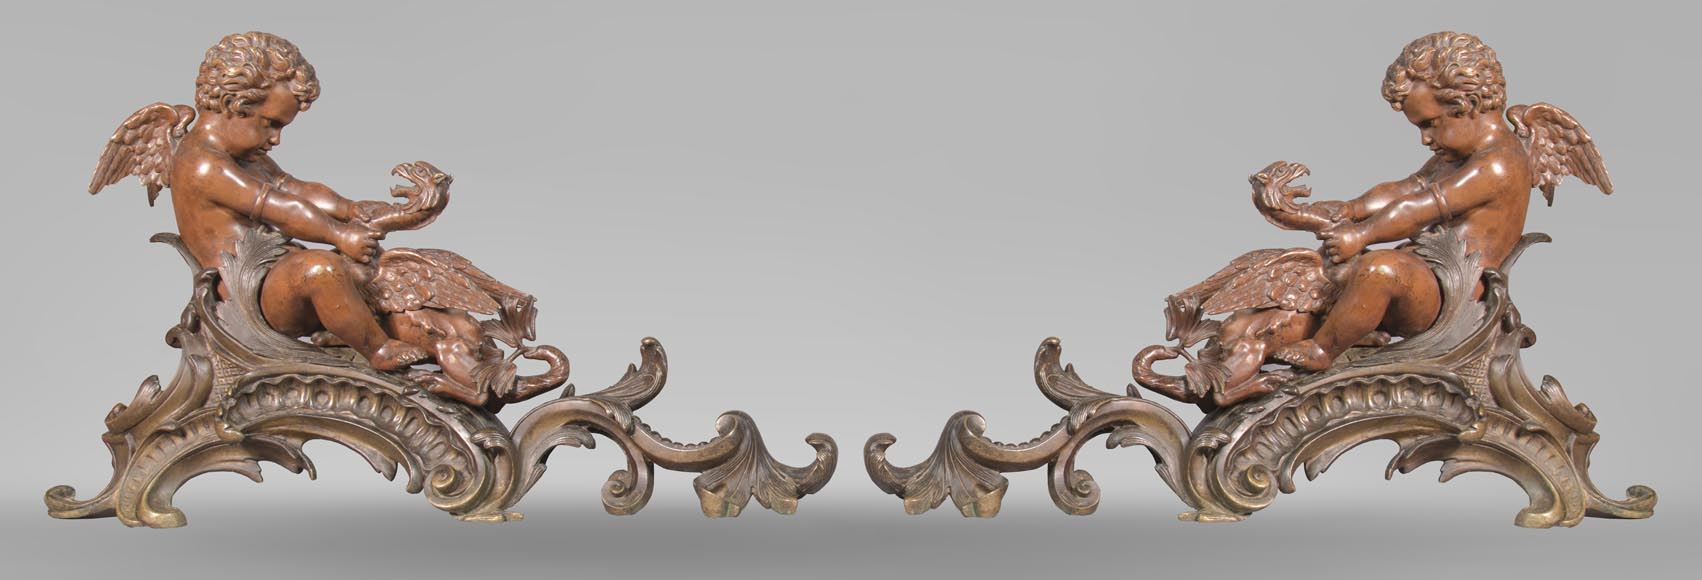 Pair of chenets, with putti and chimeras, made out of two patinas bronze-0